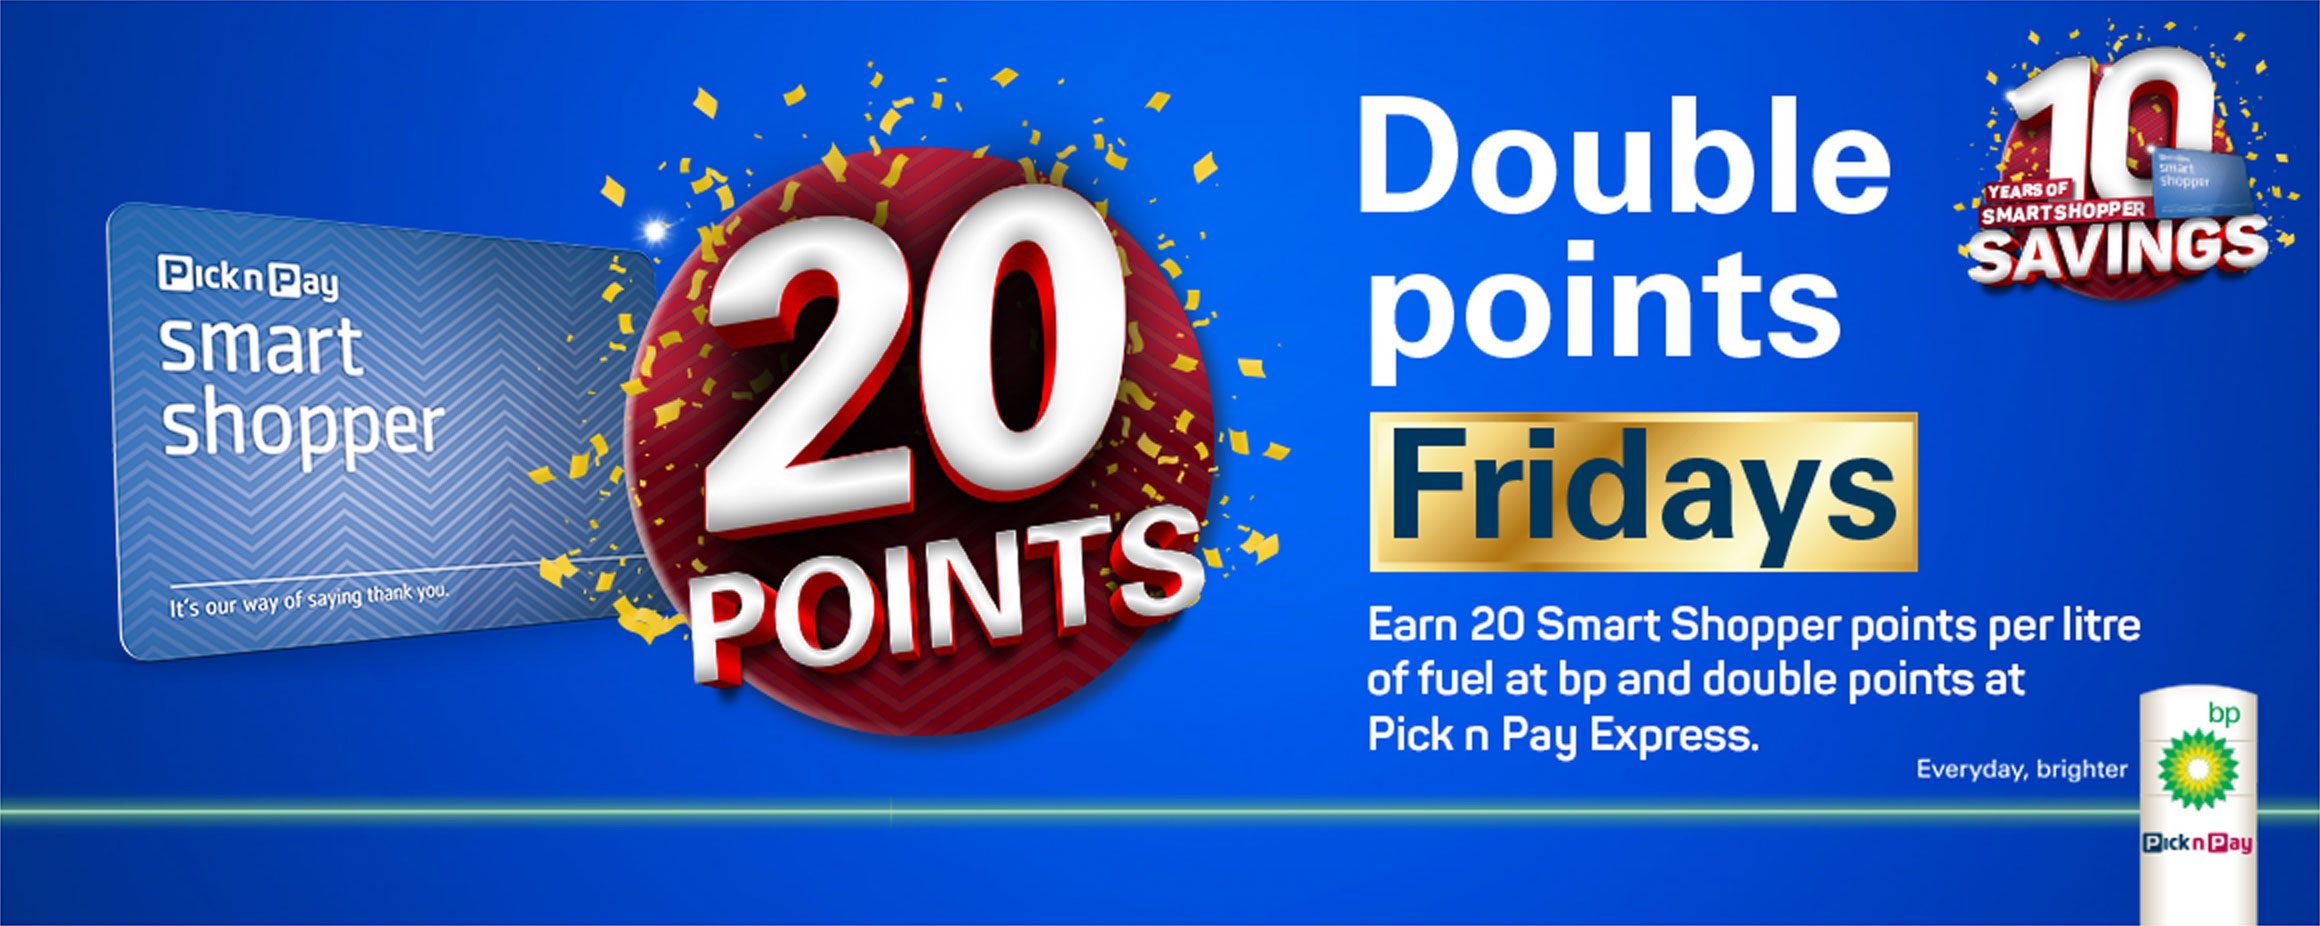 Double points Fridays